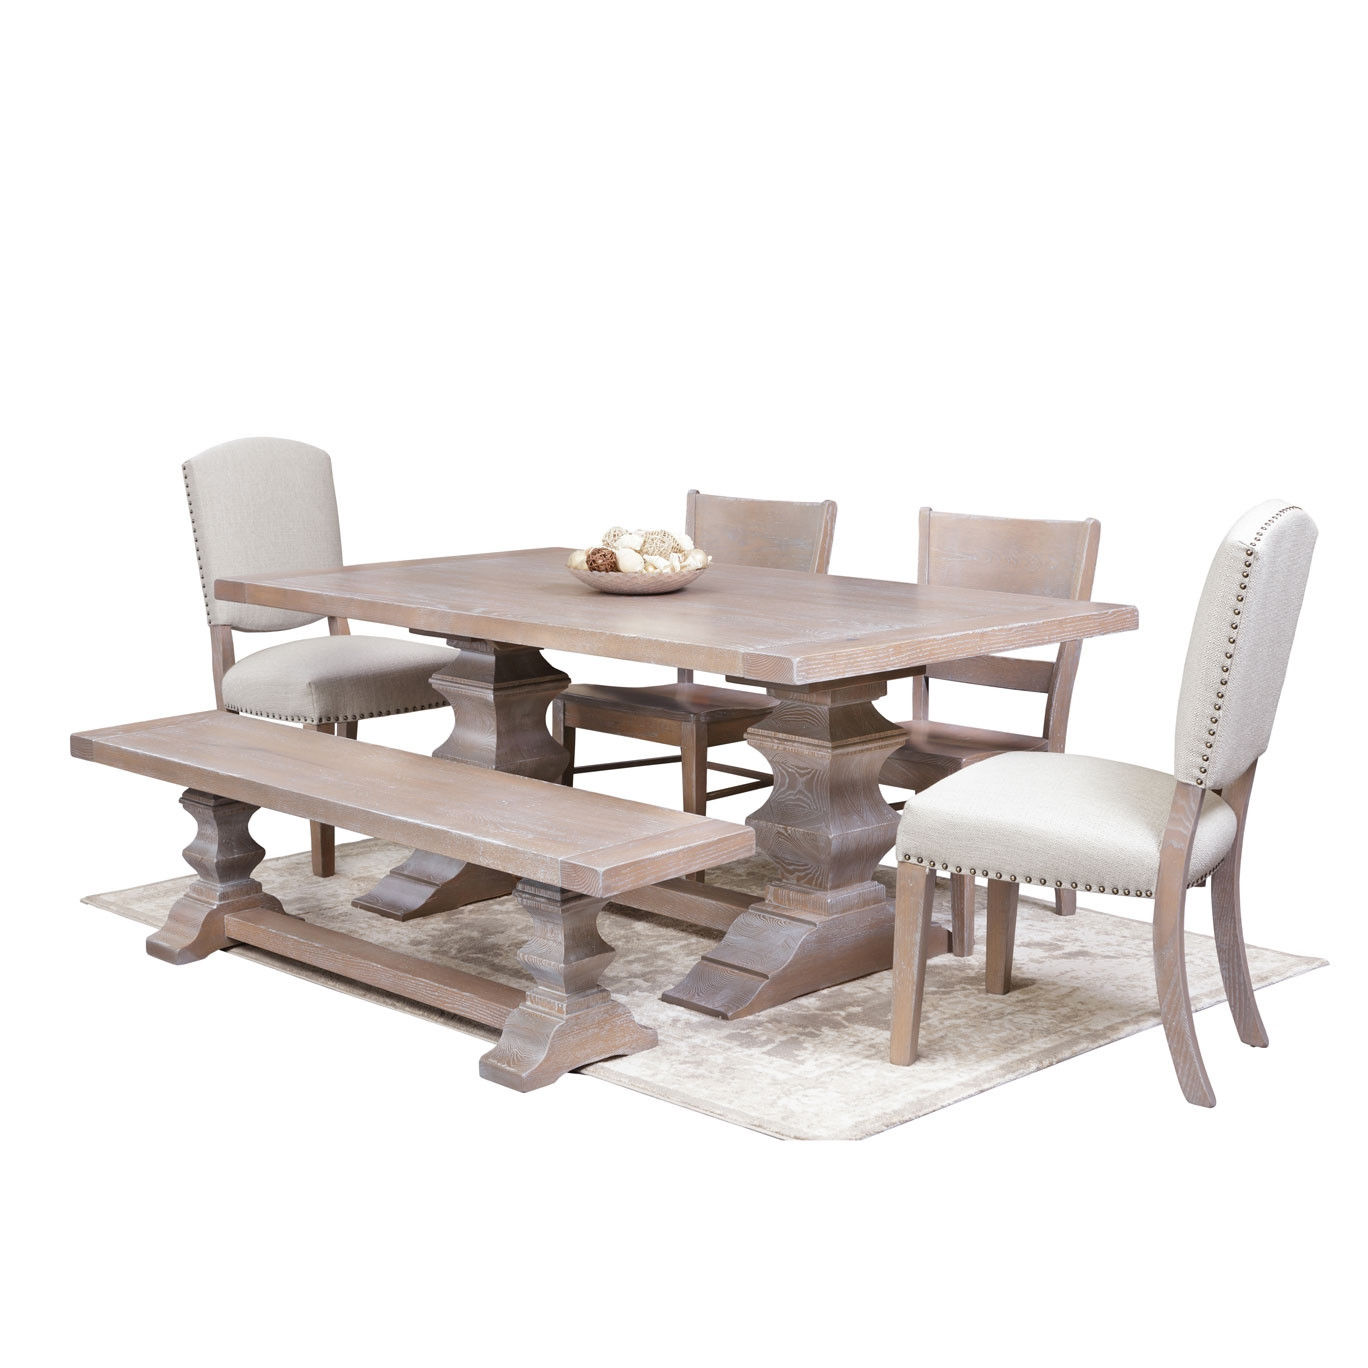 Awesome Ramsey Amish Dining Table In Lancaster County Pa Self Download Free Architecture Designs Scobabritishbridgeorg